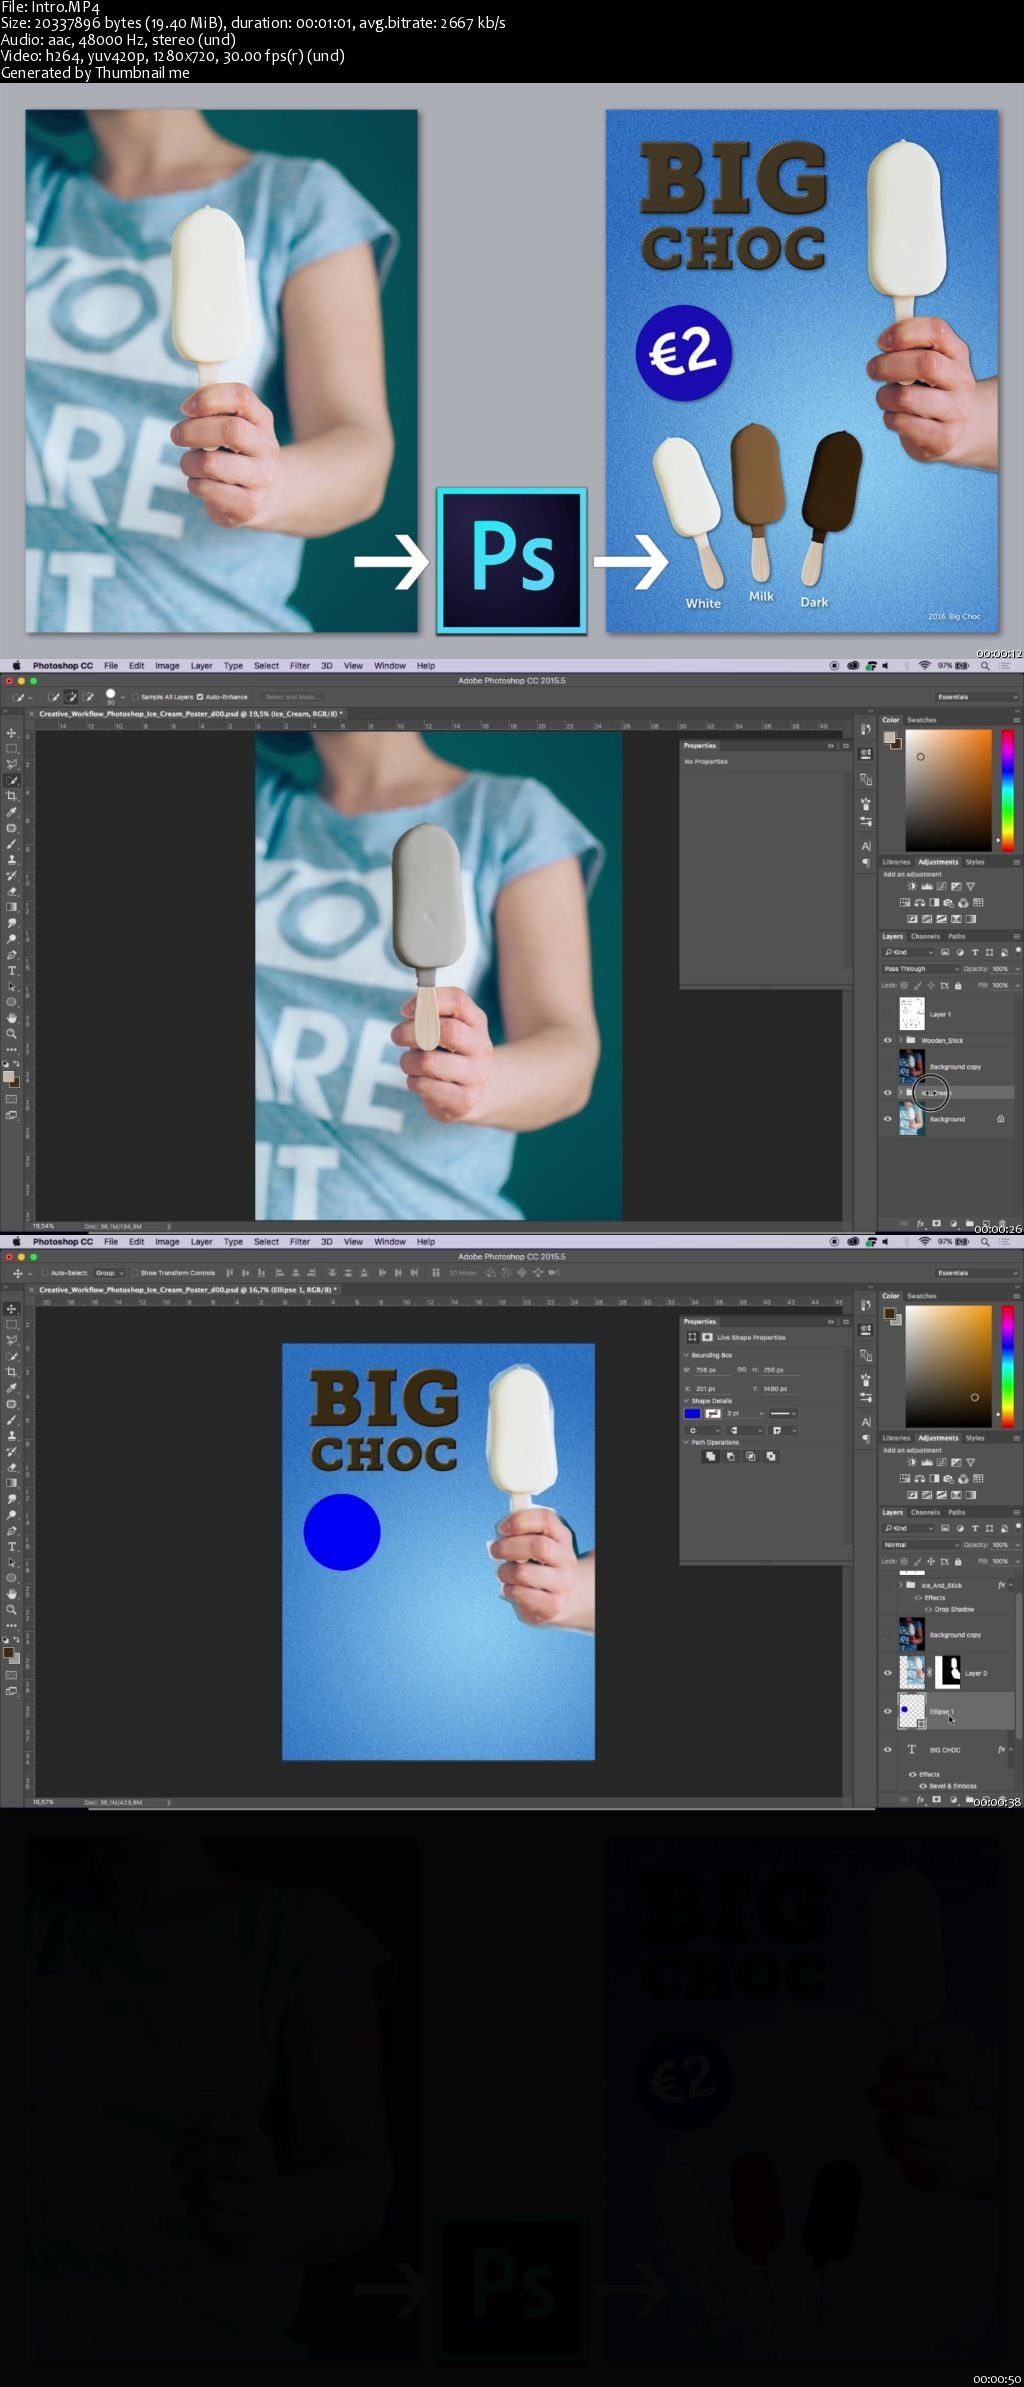 Creative Workflow in Adobe Photoshop - Quickly Design an Ice Cream Poster